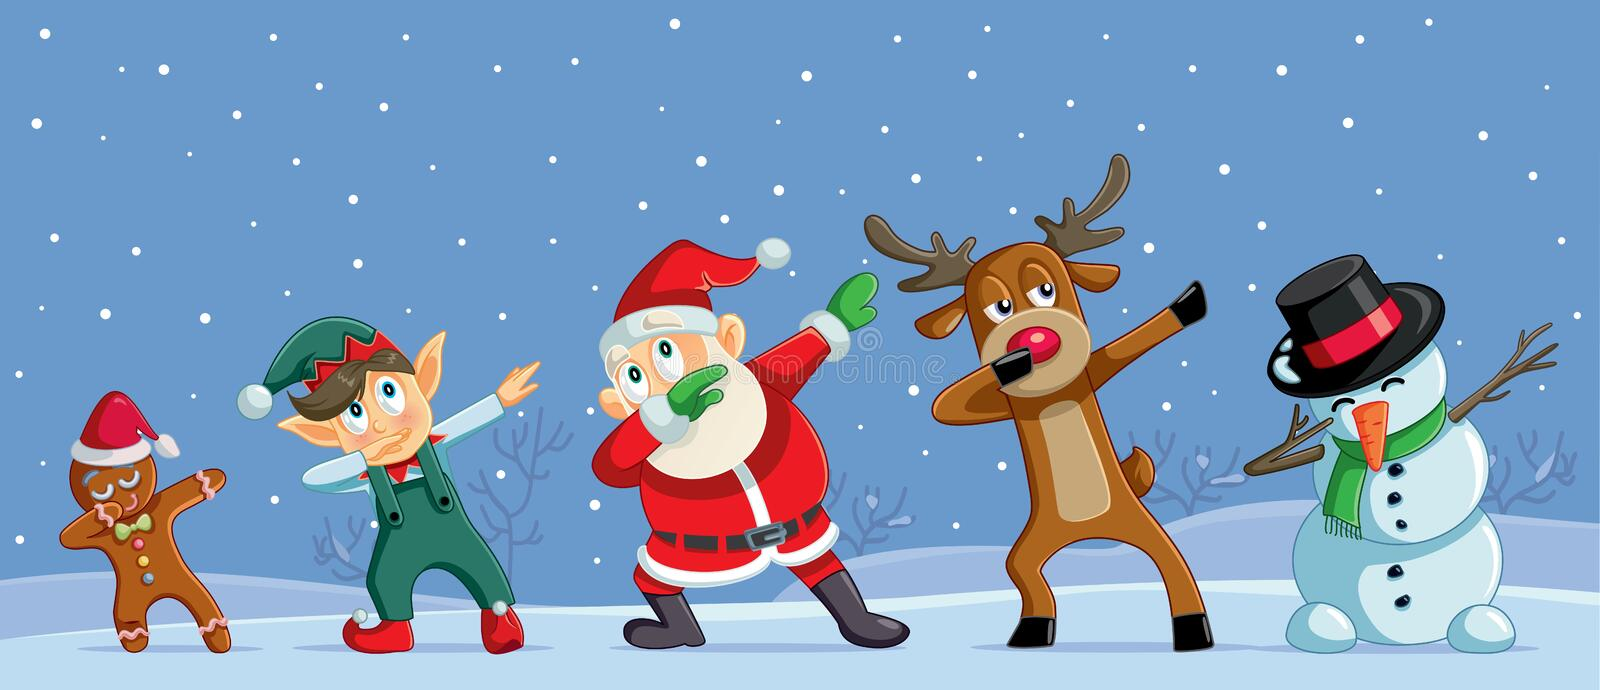 Dabbing Christmas Cartoon Characters Funny Banner stock illustration